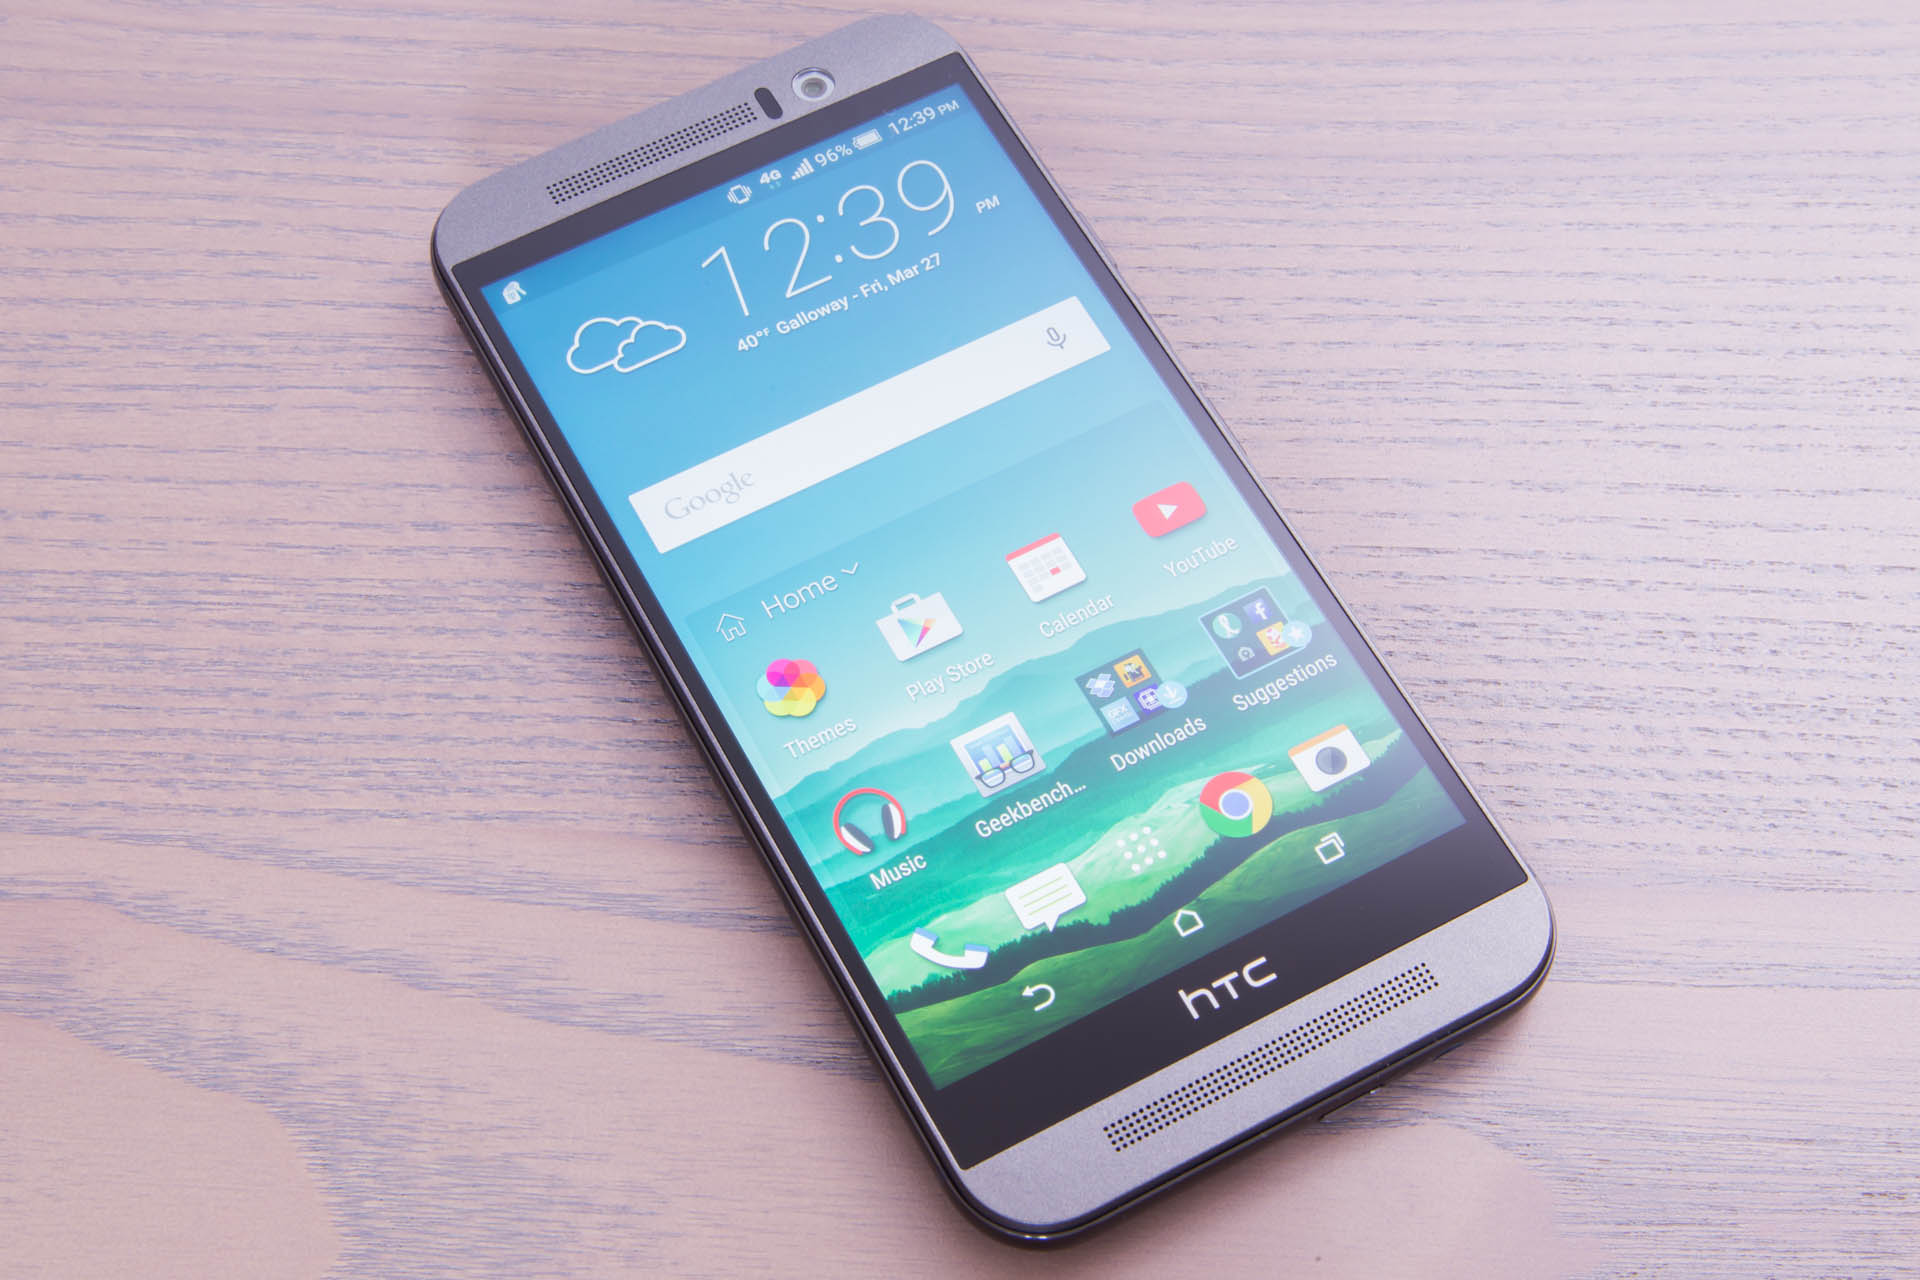 The HTC One M9.